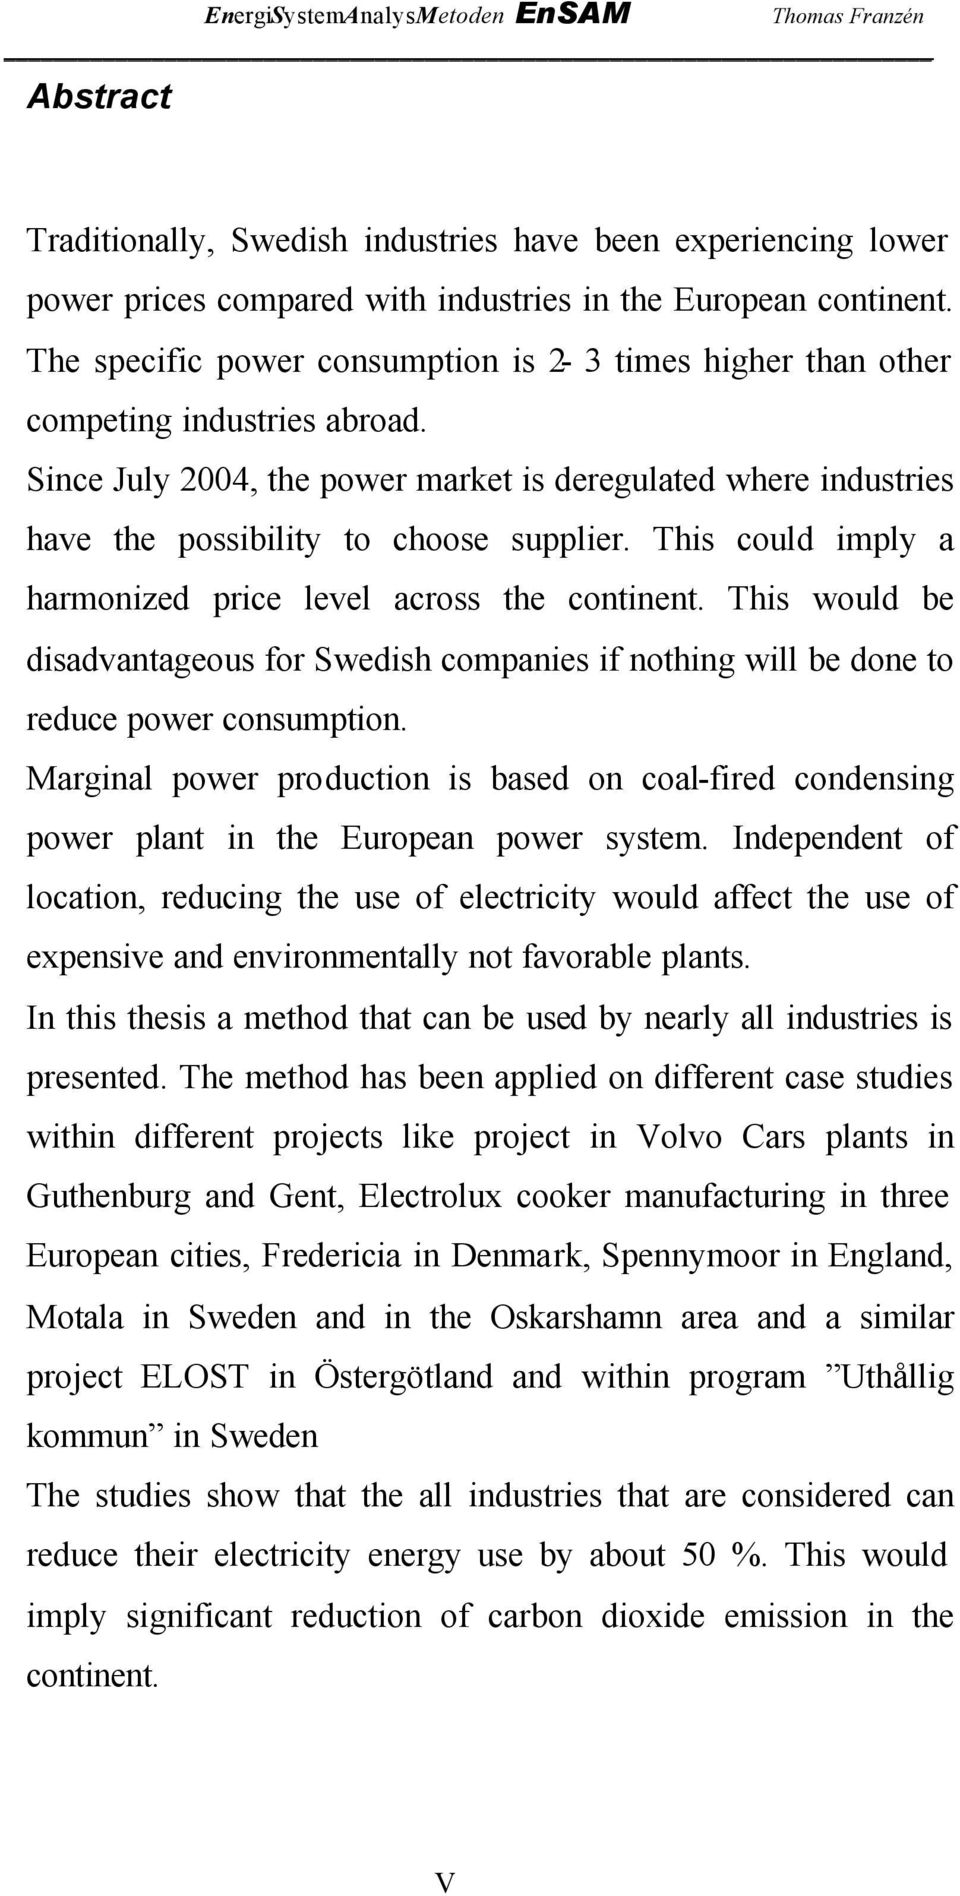 This could imply a harmonized price level across the continent. This would be disadvantageous for Swedish companies if nothing will be done to reduce power consumption.